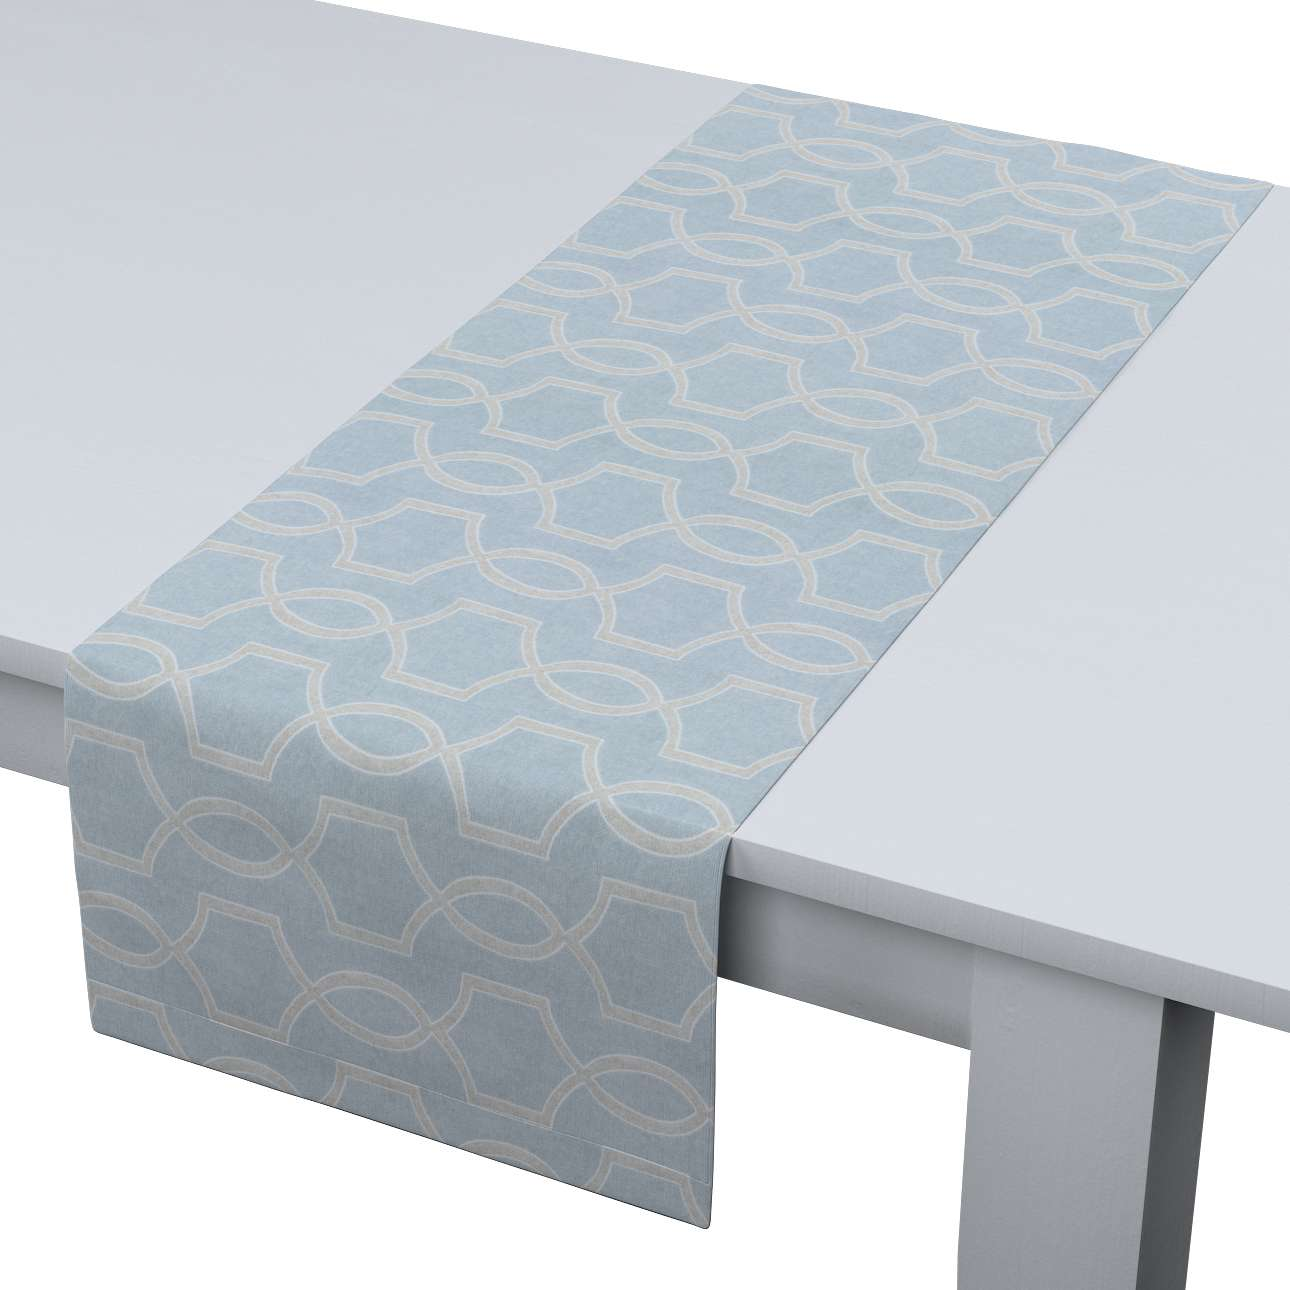 Table runner 40 x 130 cm (16 x 51 inch) in collection Comic Book & Geo Prints, fabric: 141-25